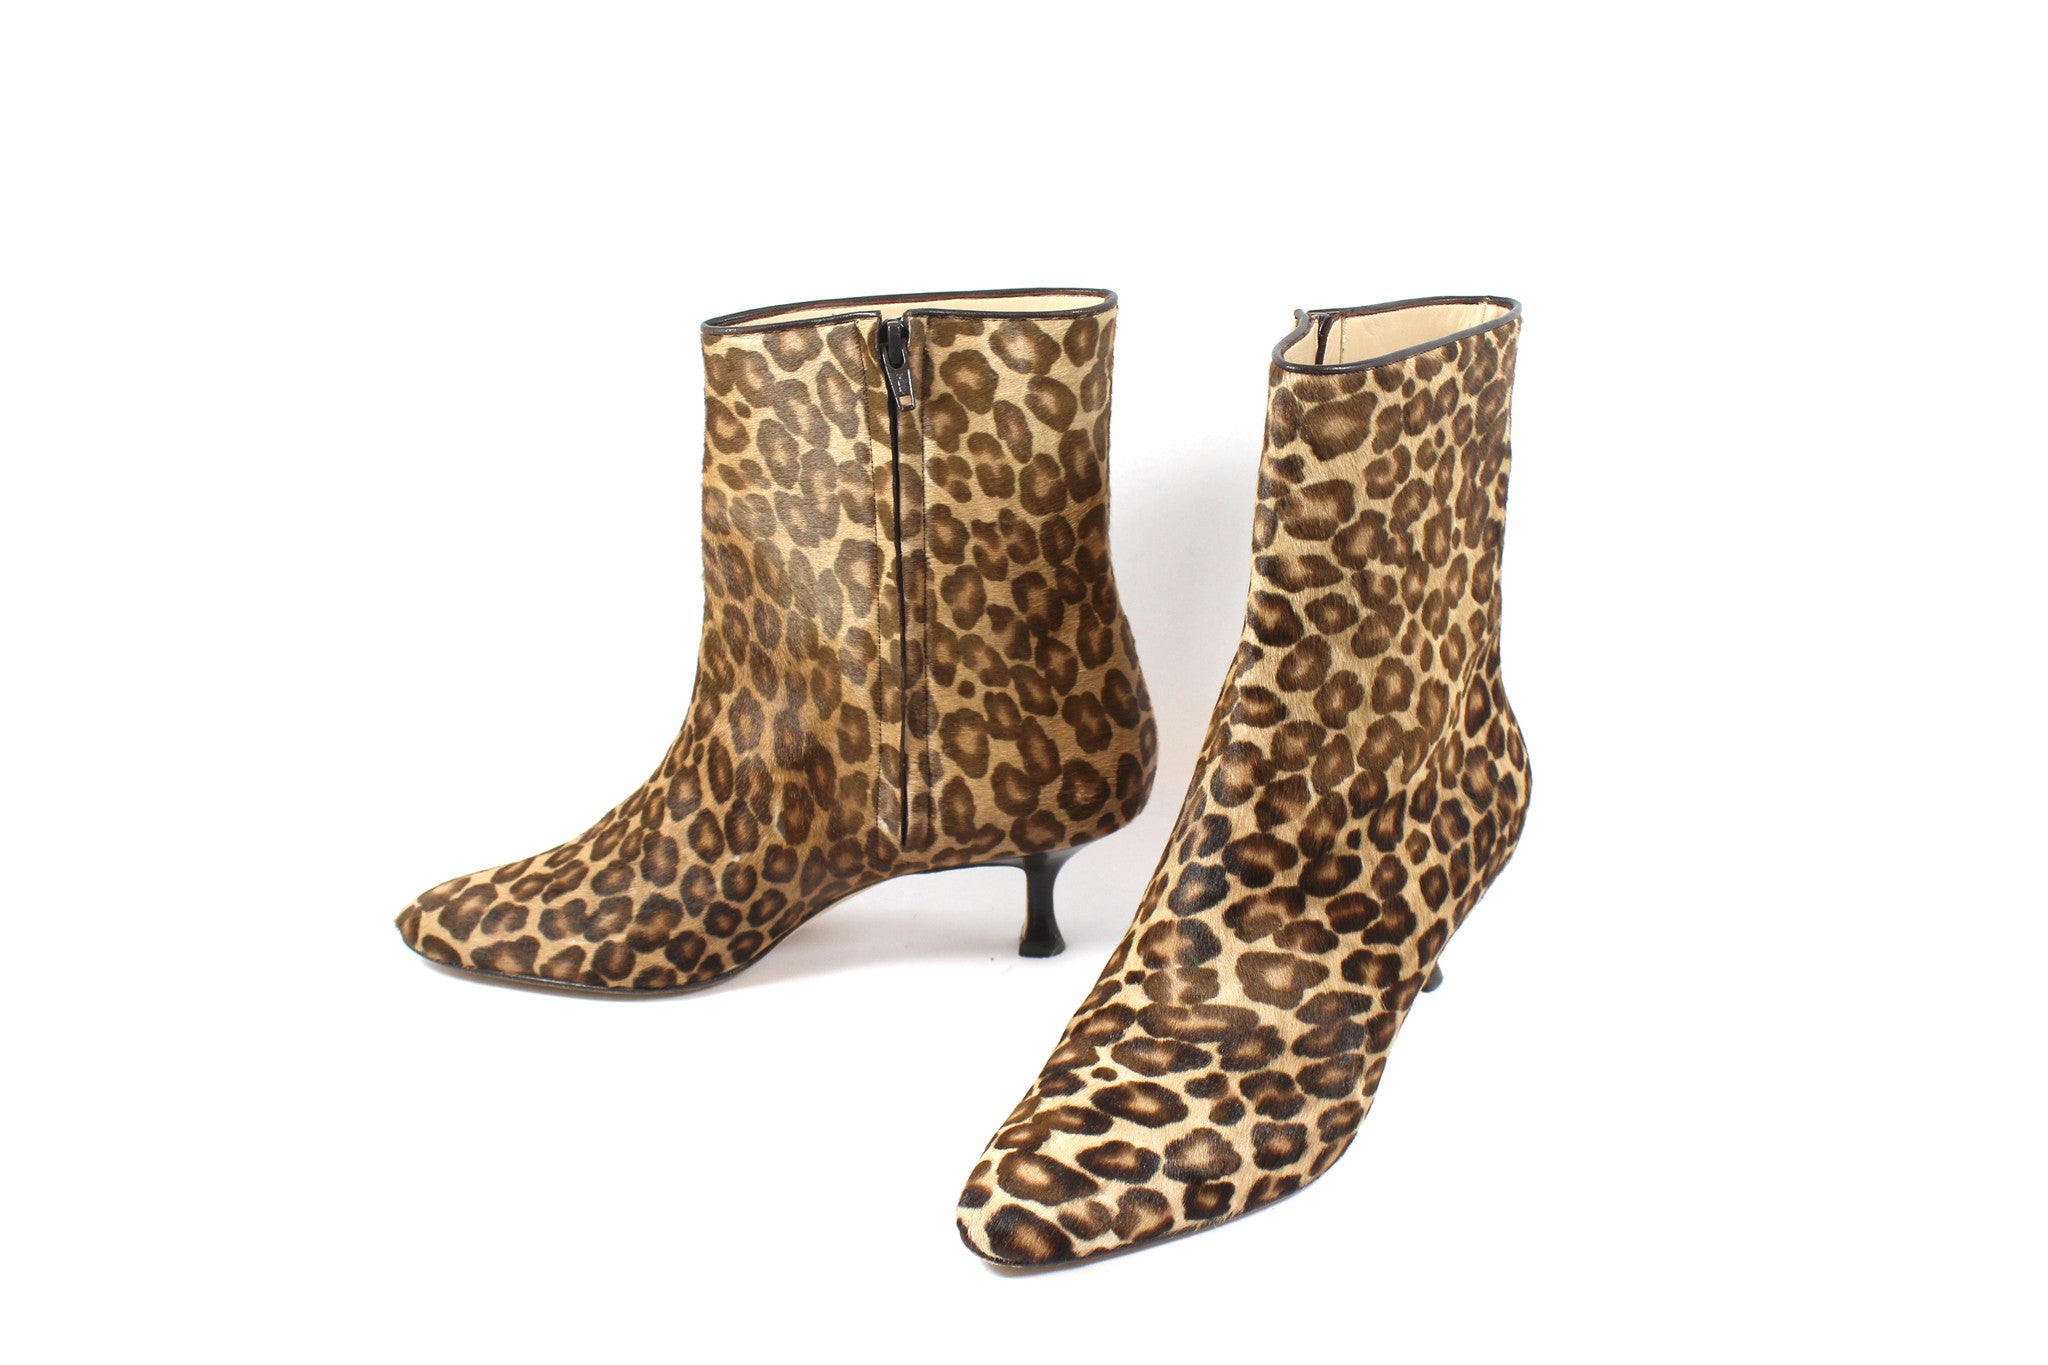 Manolo Blahnik Leopard Calf Hair Ankle Boots (Size 38) - Encore Consignment - 3